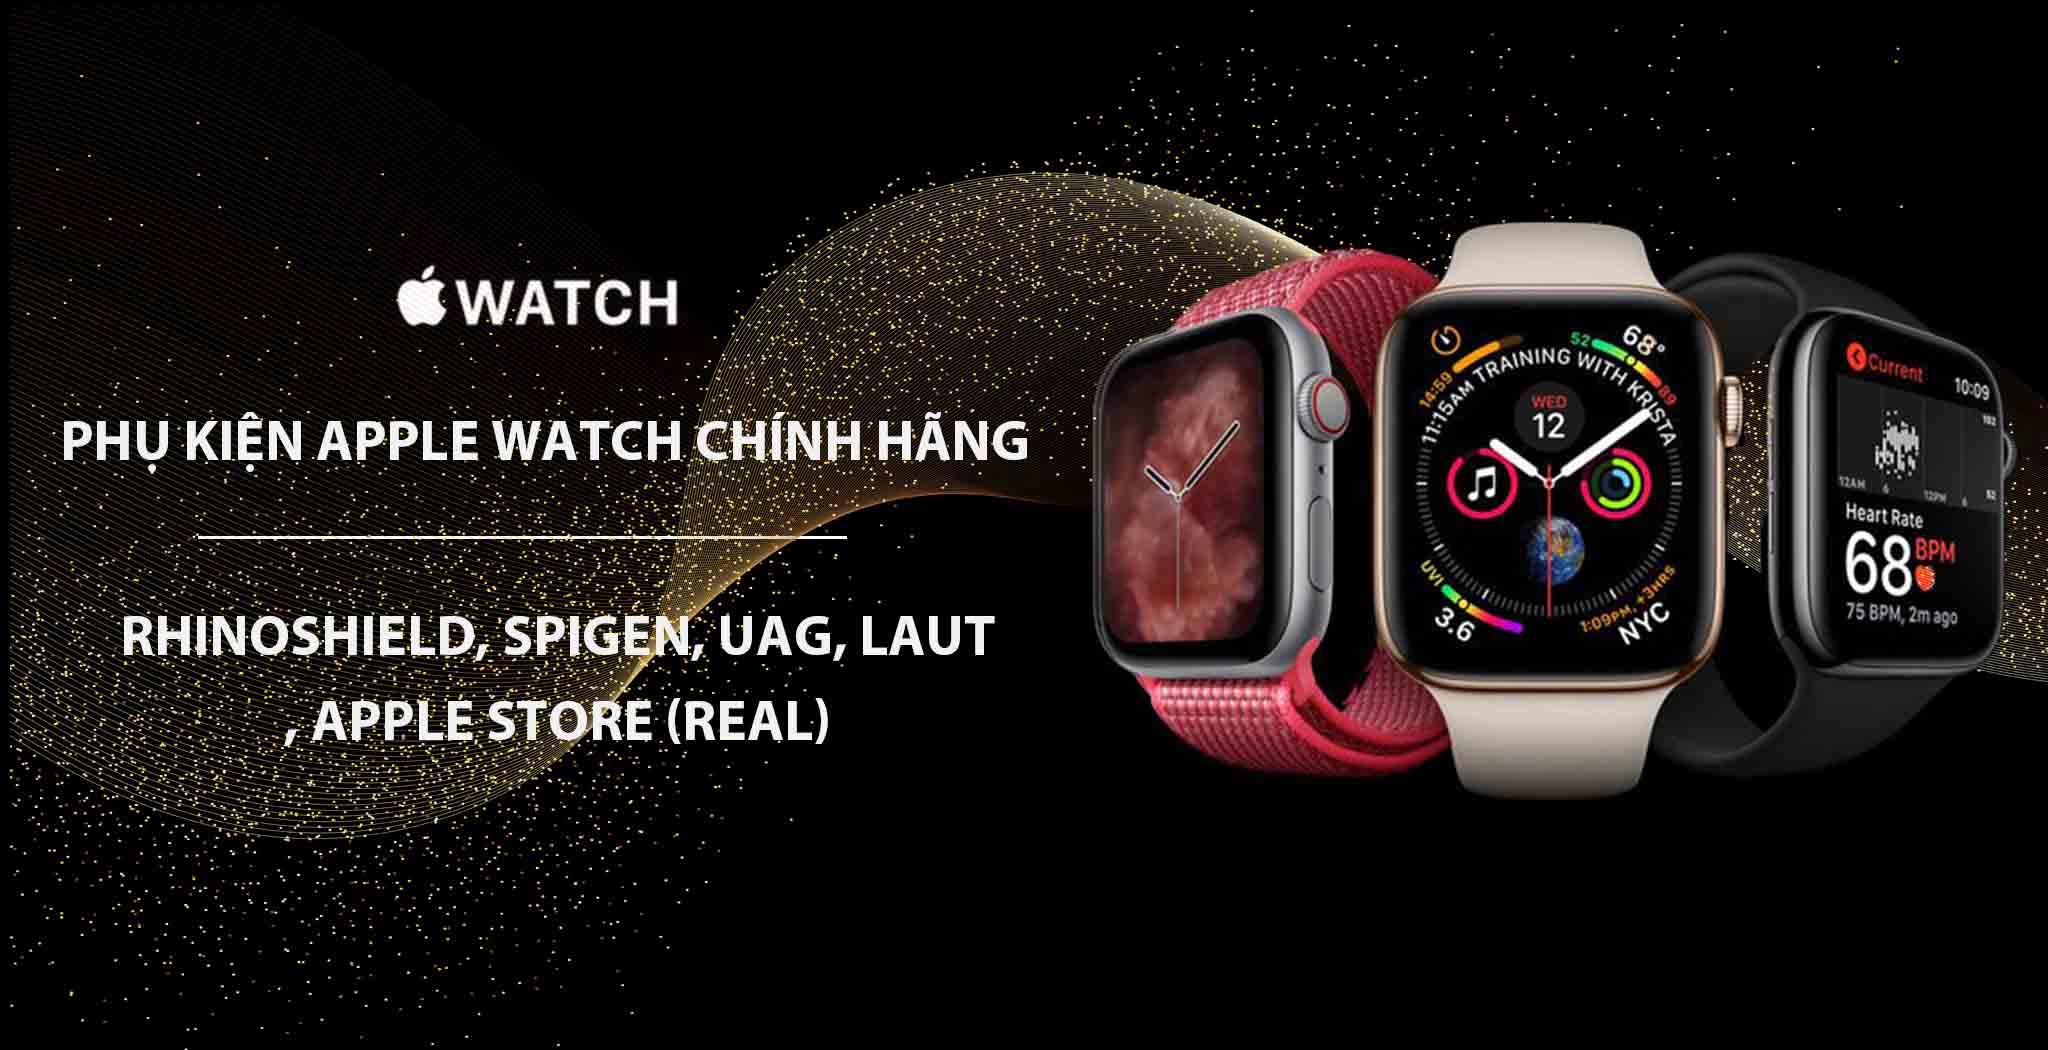 Phụ kiện Apple Watch